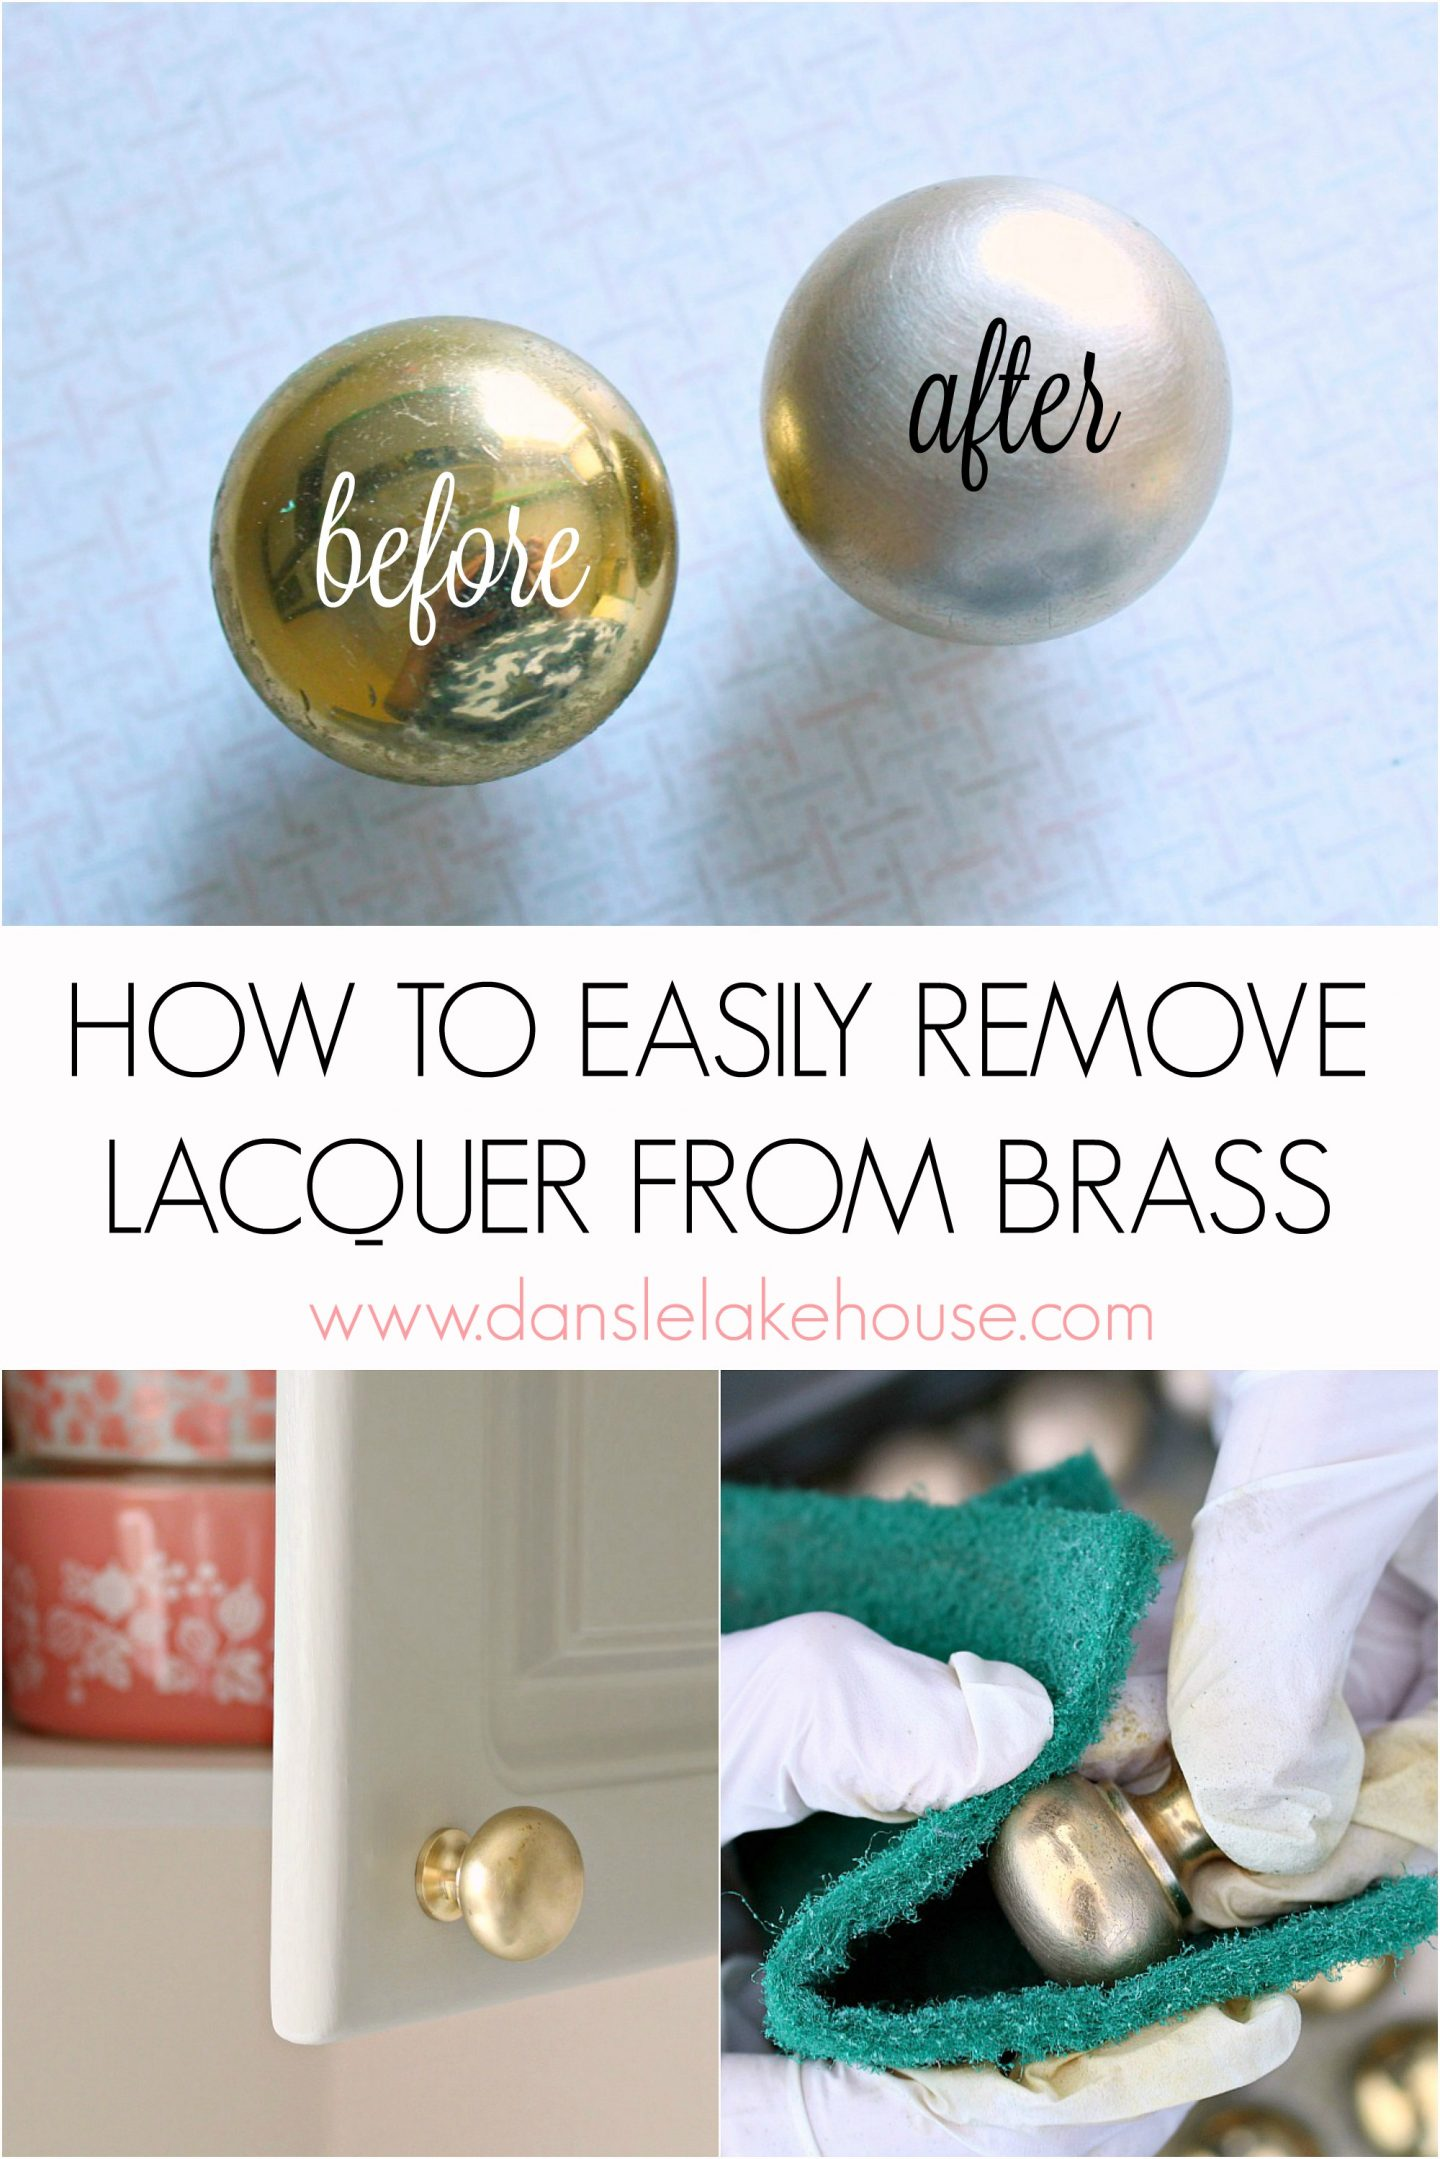 How to Remove Lacquer From Brass to Reveal a Brushed Finish | Refinish Brass Hardware | Money Saving Hacks